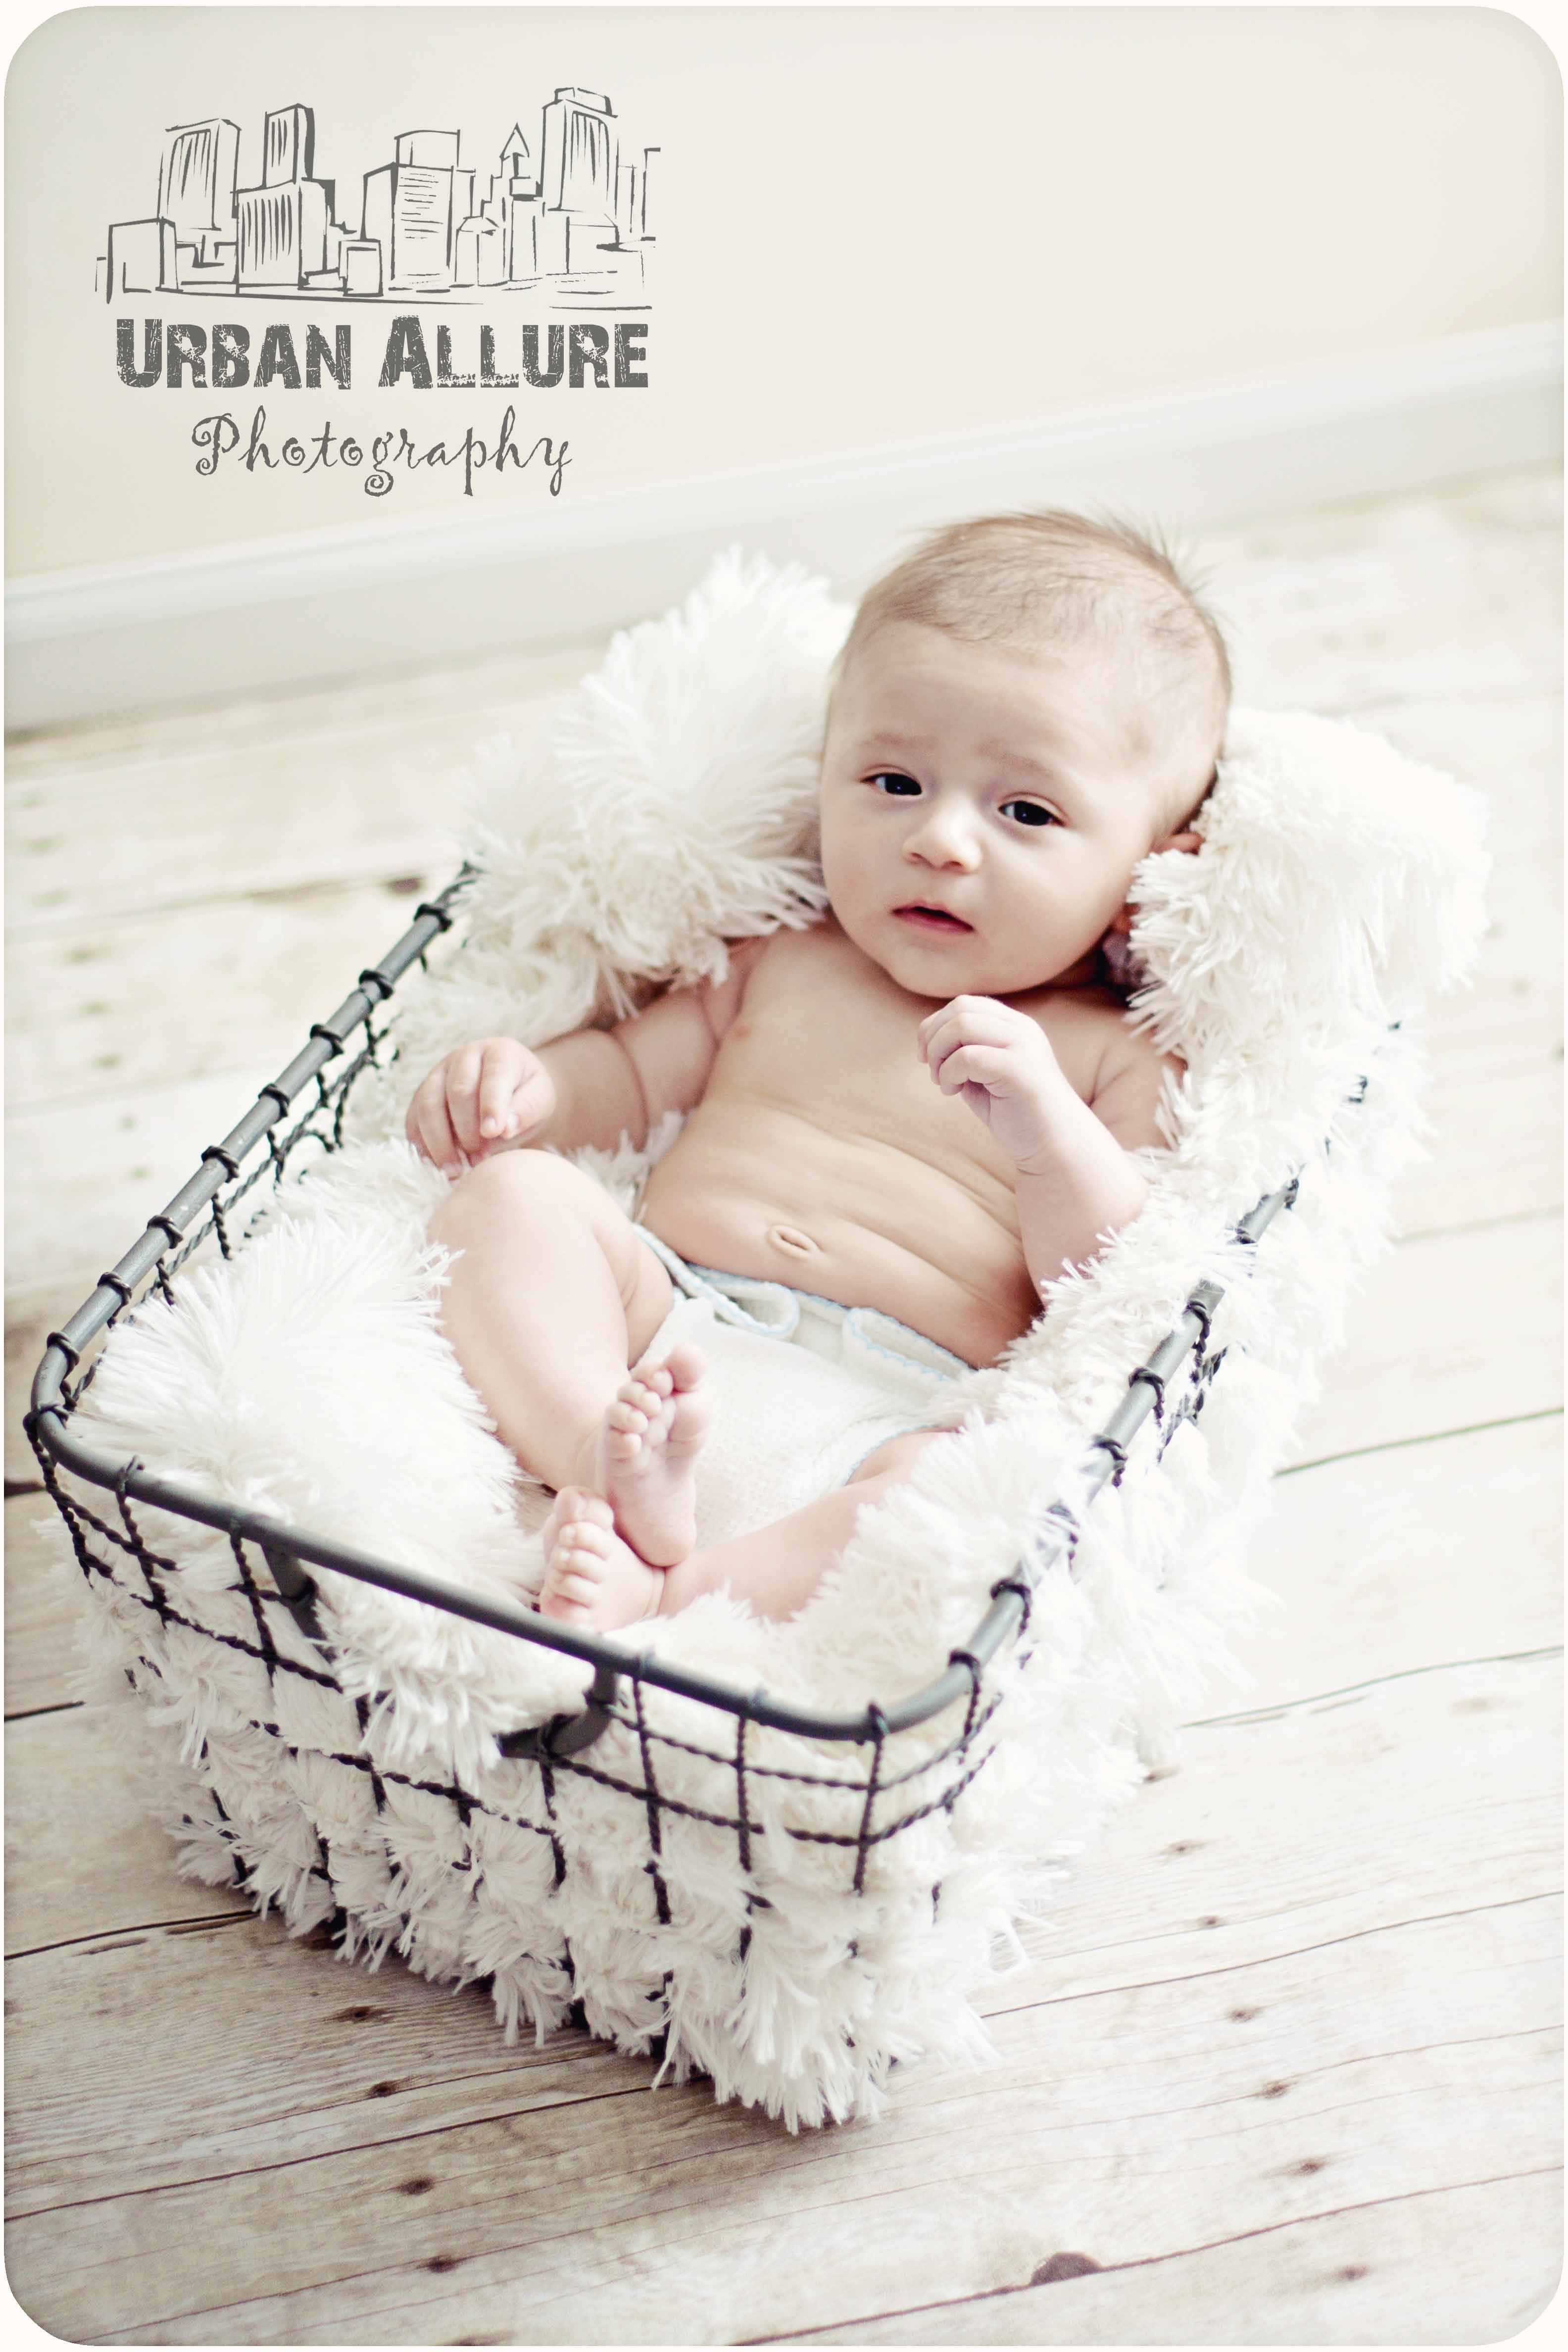 10 trendy 3 month old baby photo ideas